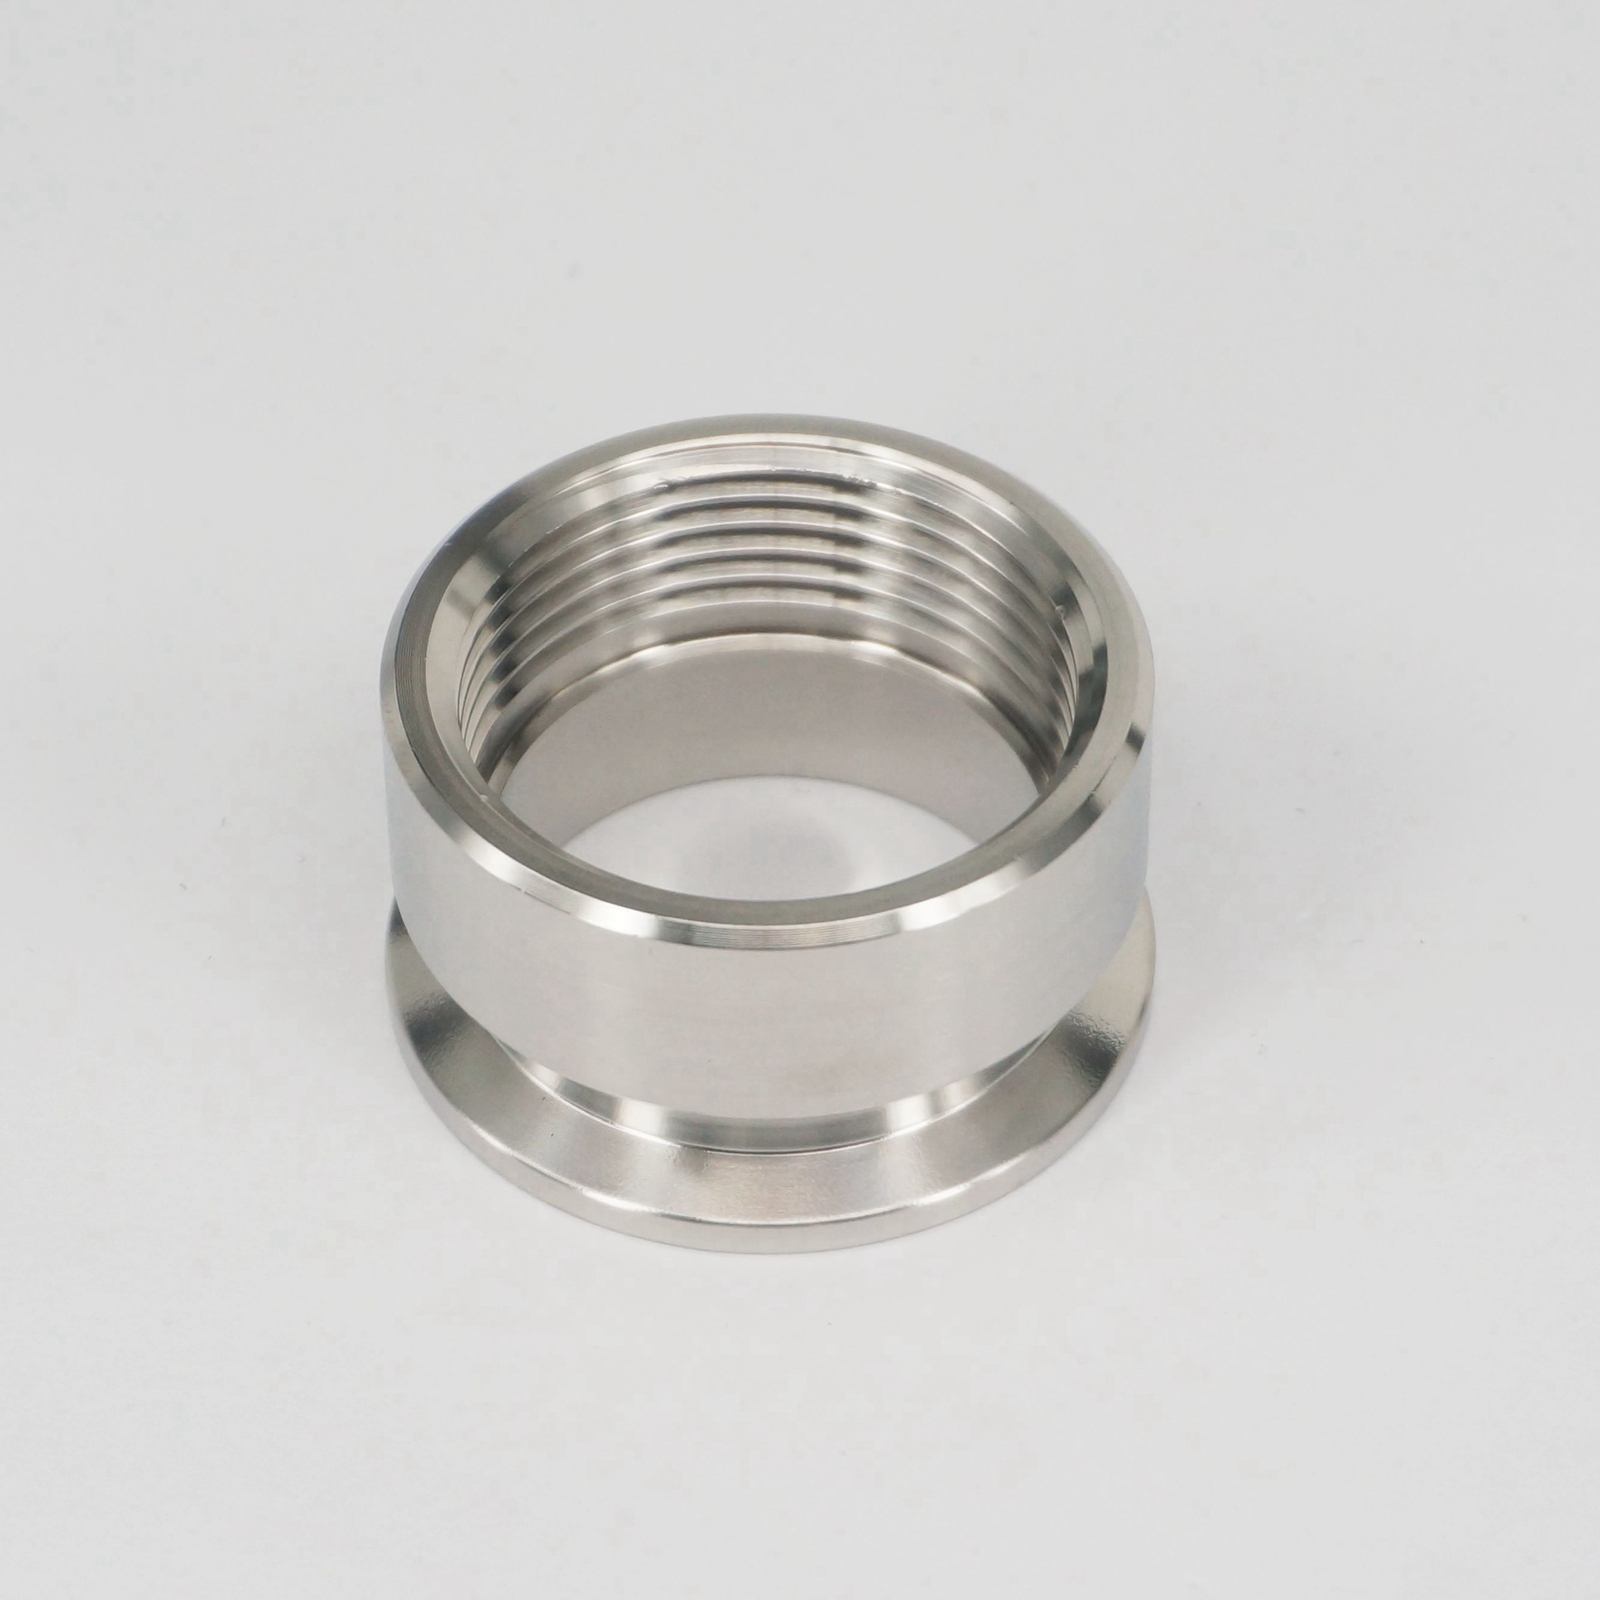 1-1/4 BSP Female x 1.5 Tri Clamp 50.5mm Ferrule O/D 304 Stainless Steel Sanitary Pipe Fitting Connector For Homebrew 1 2 bsp male x 1 5 tri clamp 304 stainless steel pipe fitting connector for homebrew with hex nut